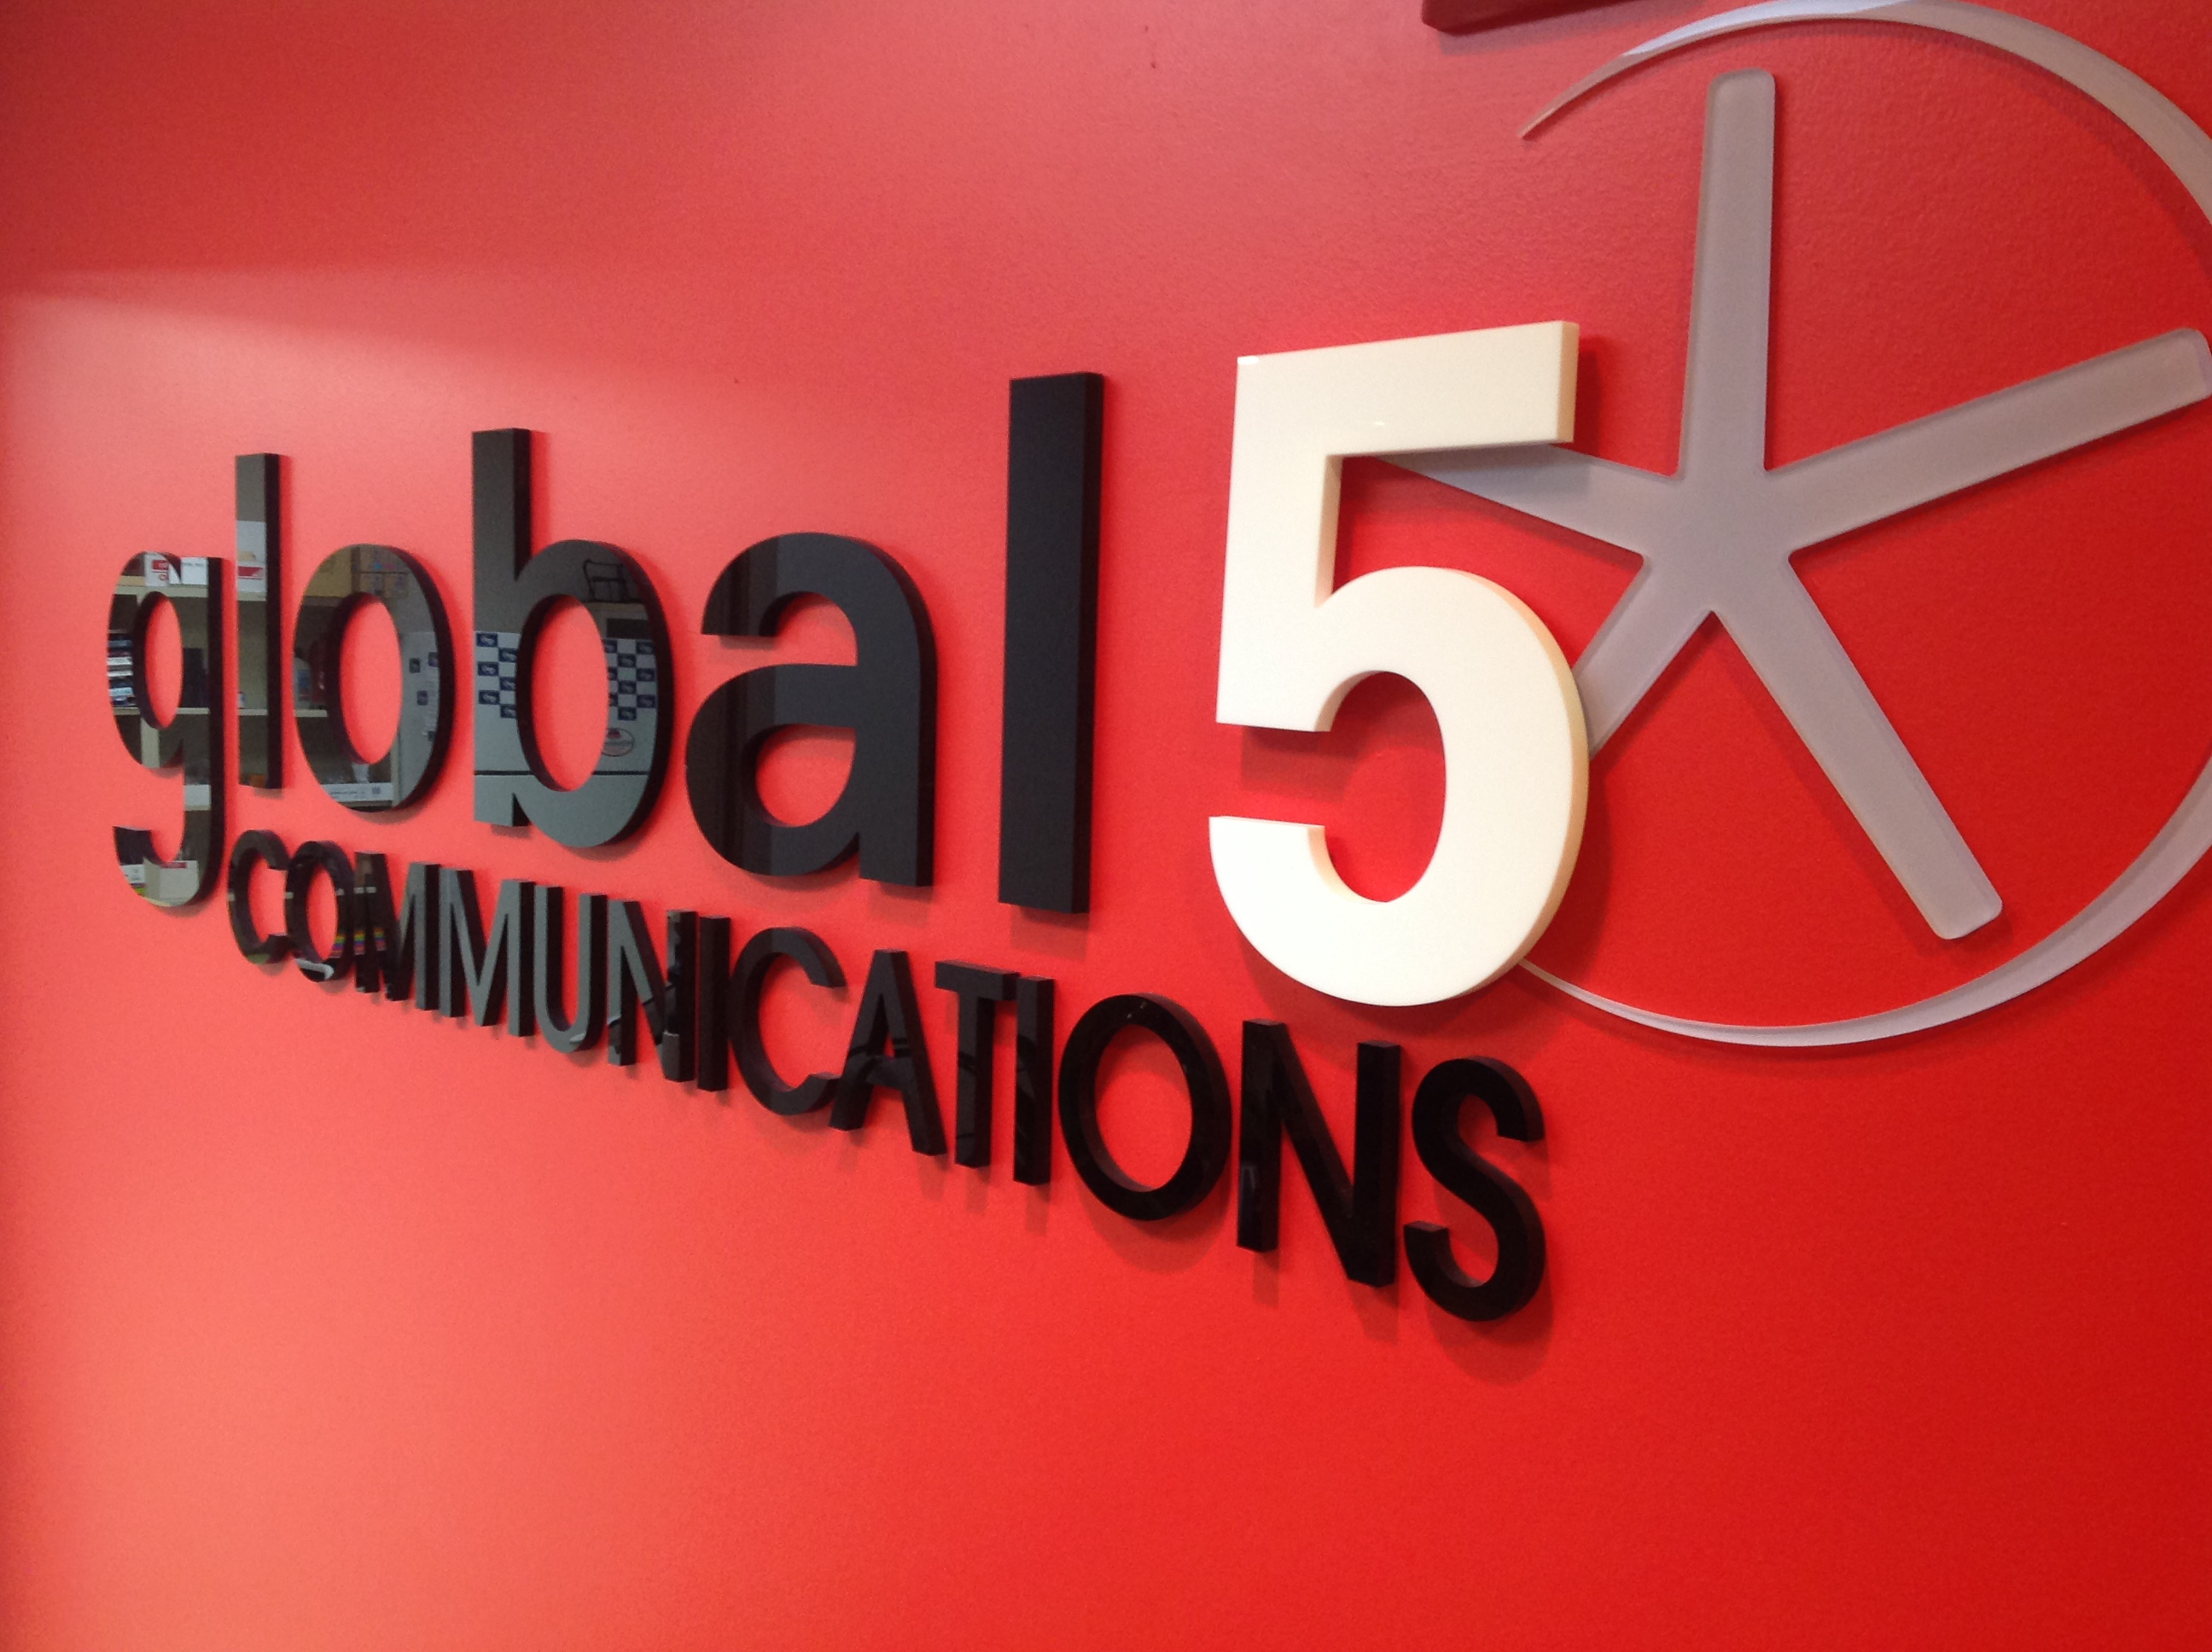 Global-5 Communications Certified as a Florida SBE